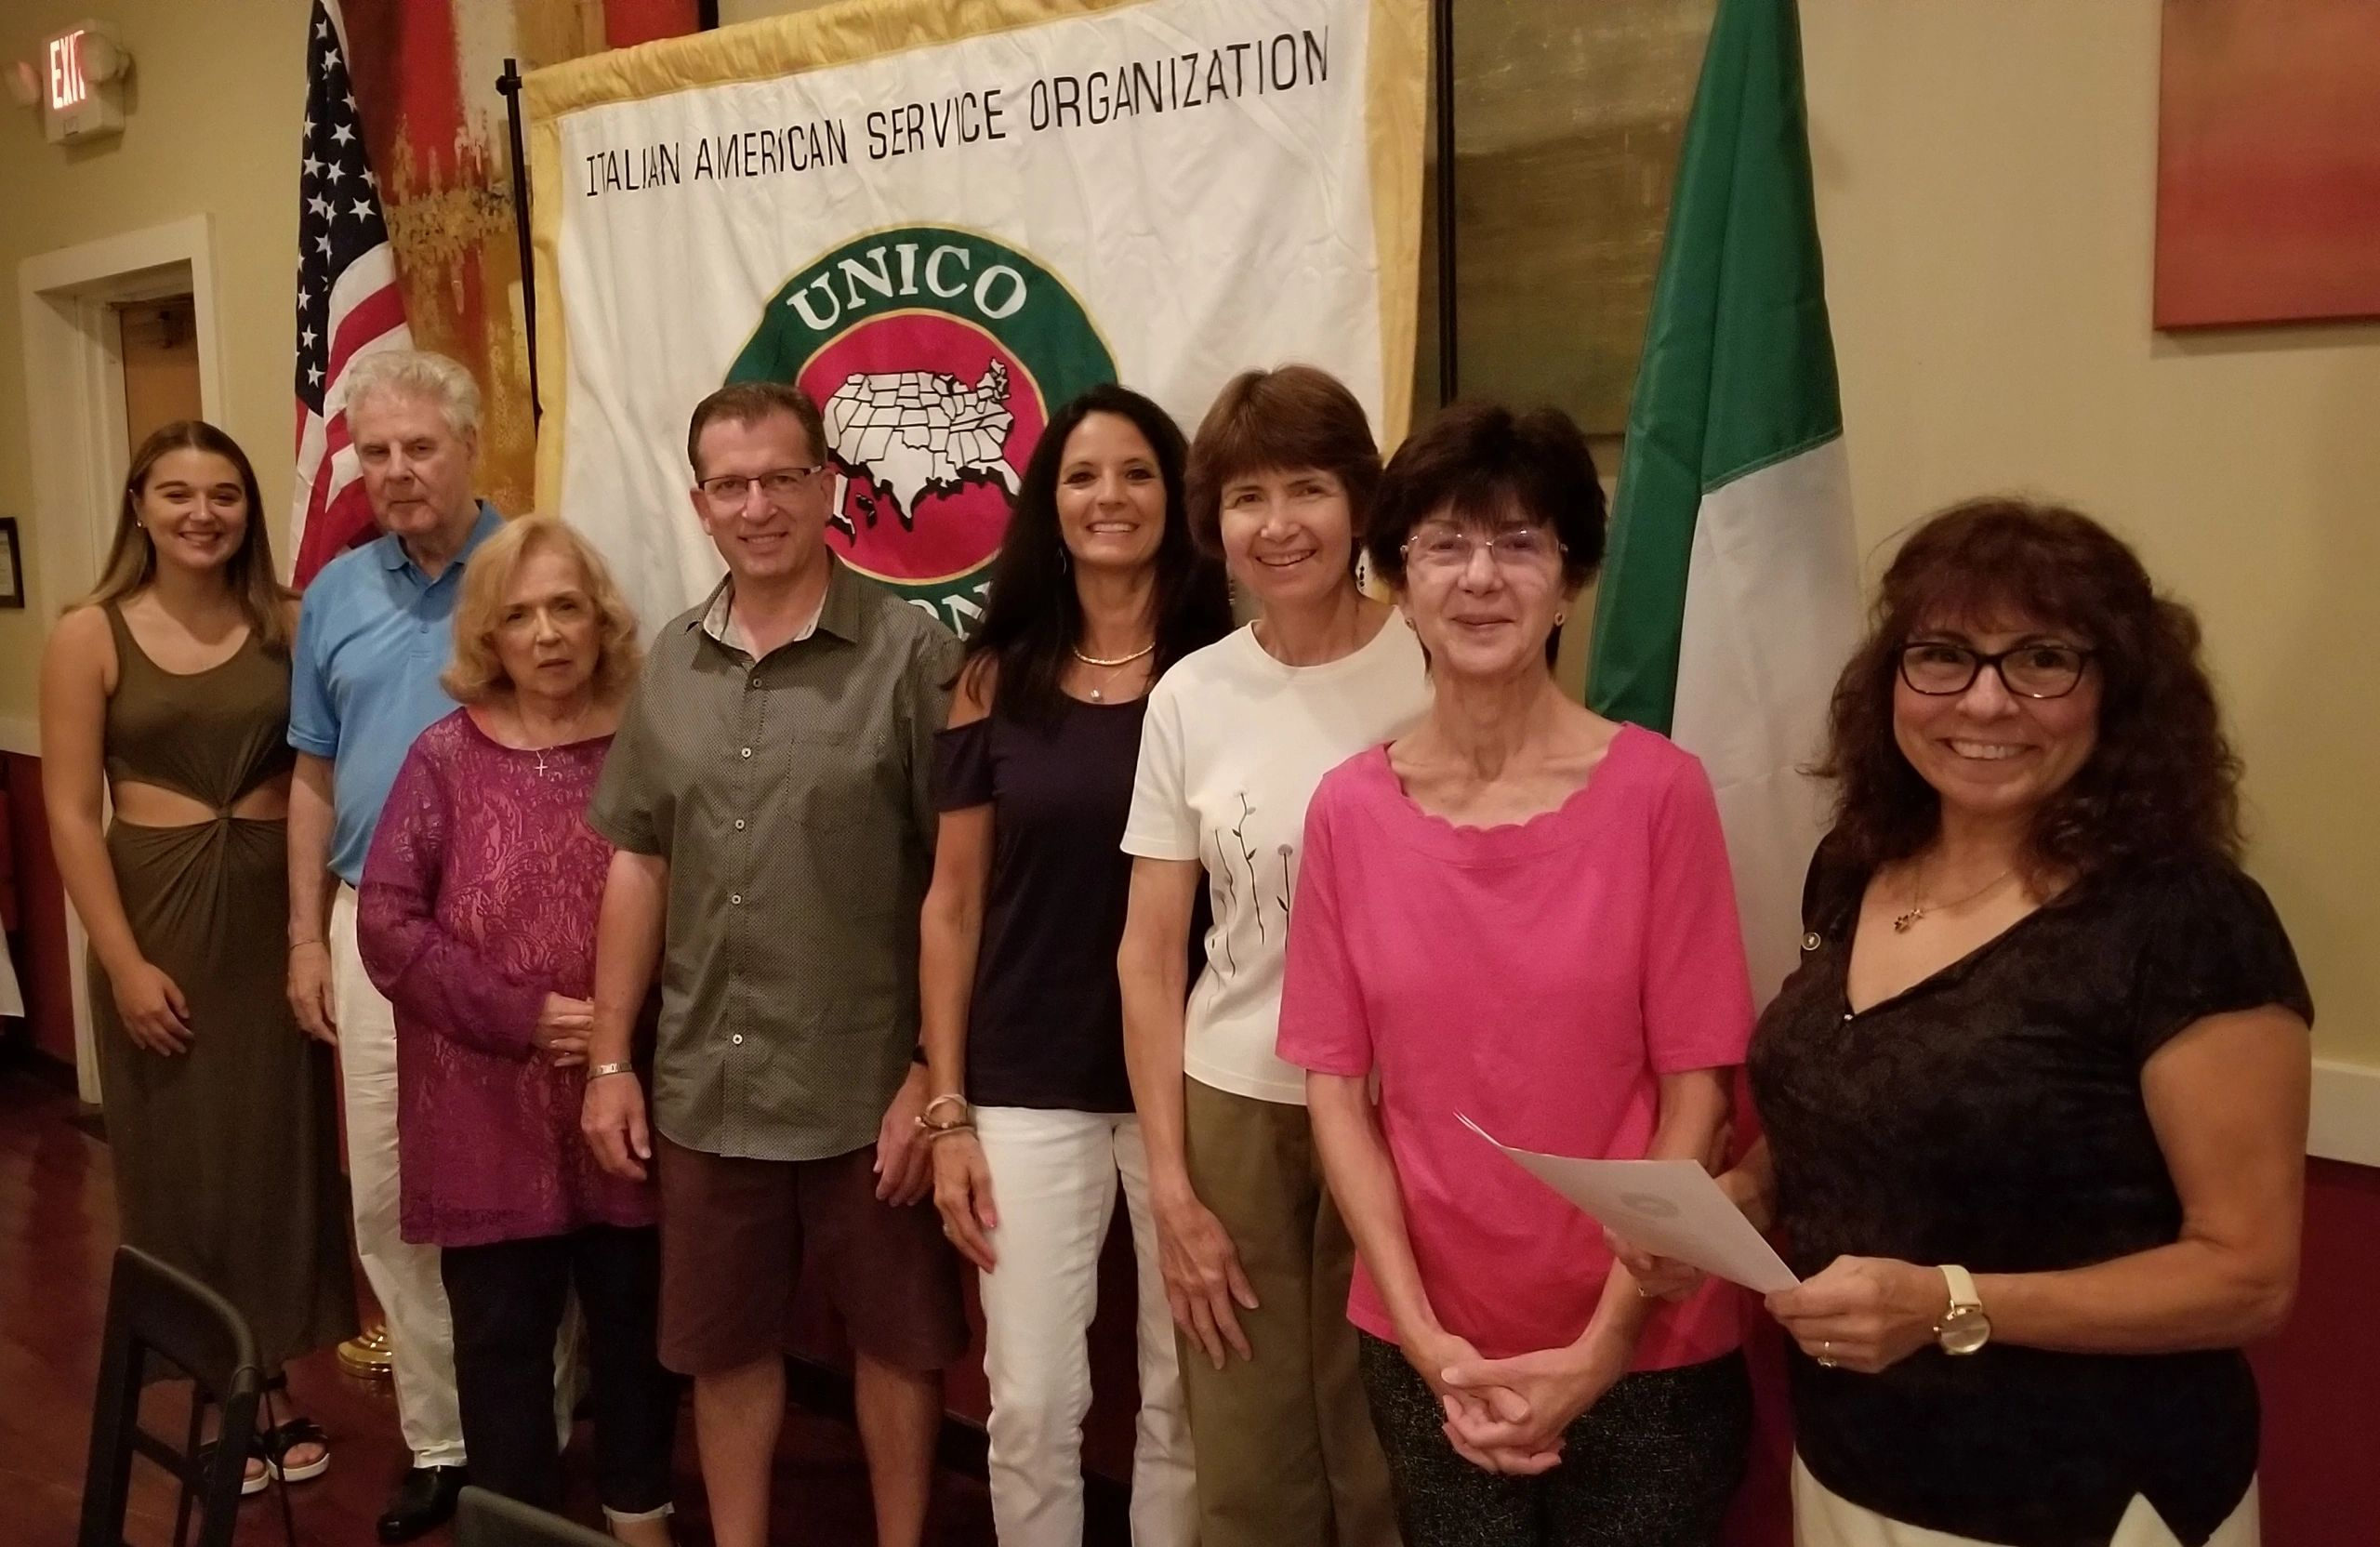 2018-19 Miss UNICO Kirsten Clerico, (far left)  looks on as Vice President Mariann Cialdella (far right) installs new members - L to R: Tom Celllili, Philomena Celllili, Mike Giordano, Sherry Ferrera, Tina Mastrobuono, and Vicki Braun.